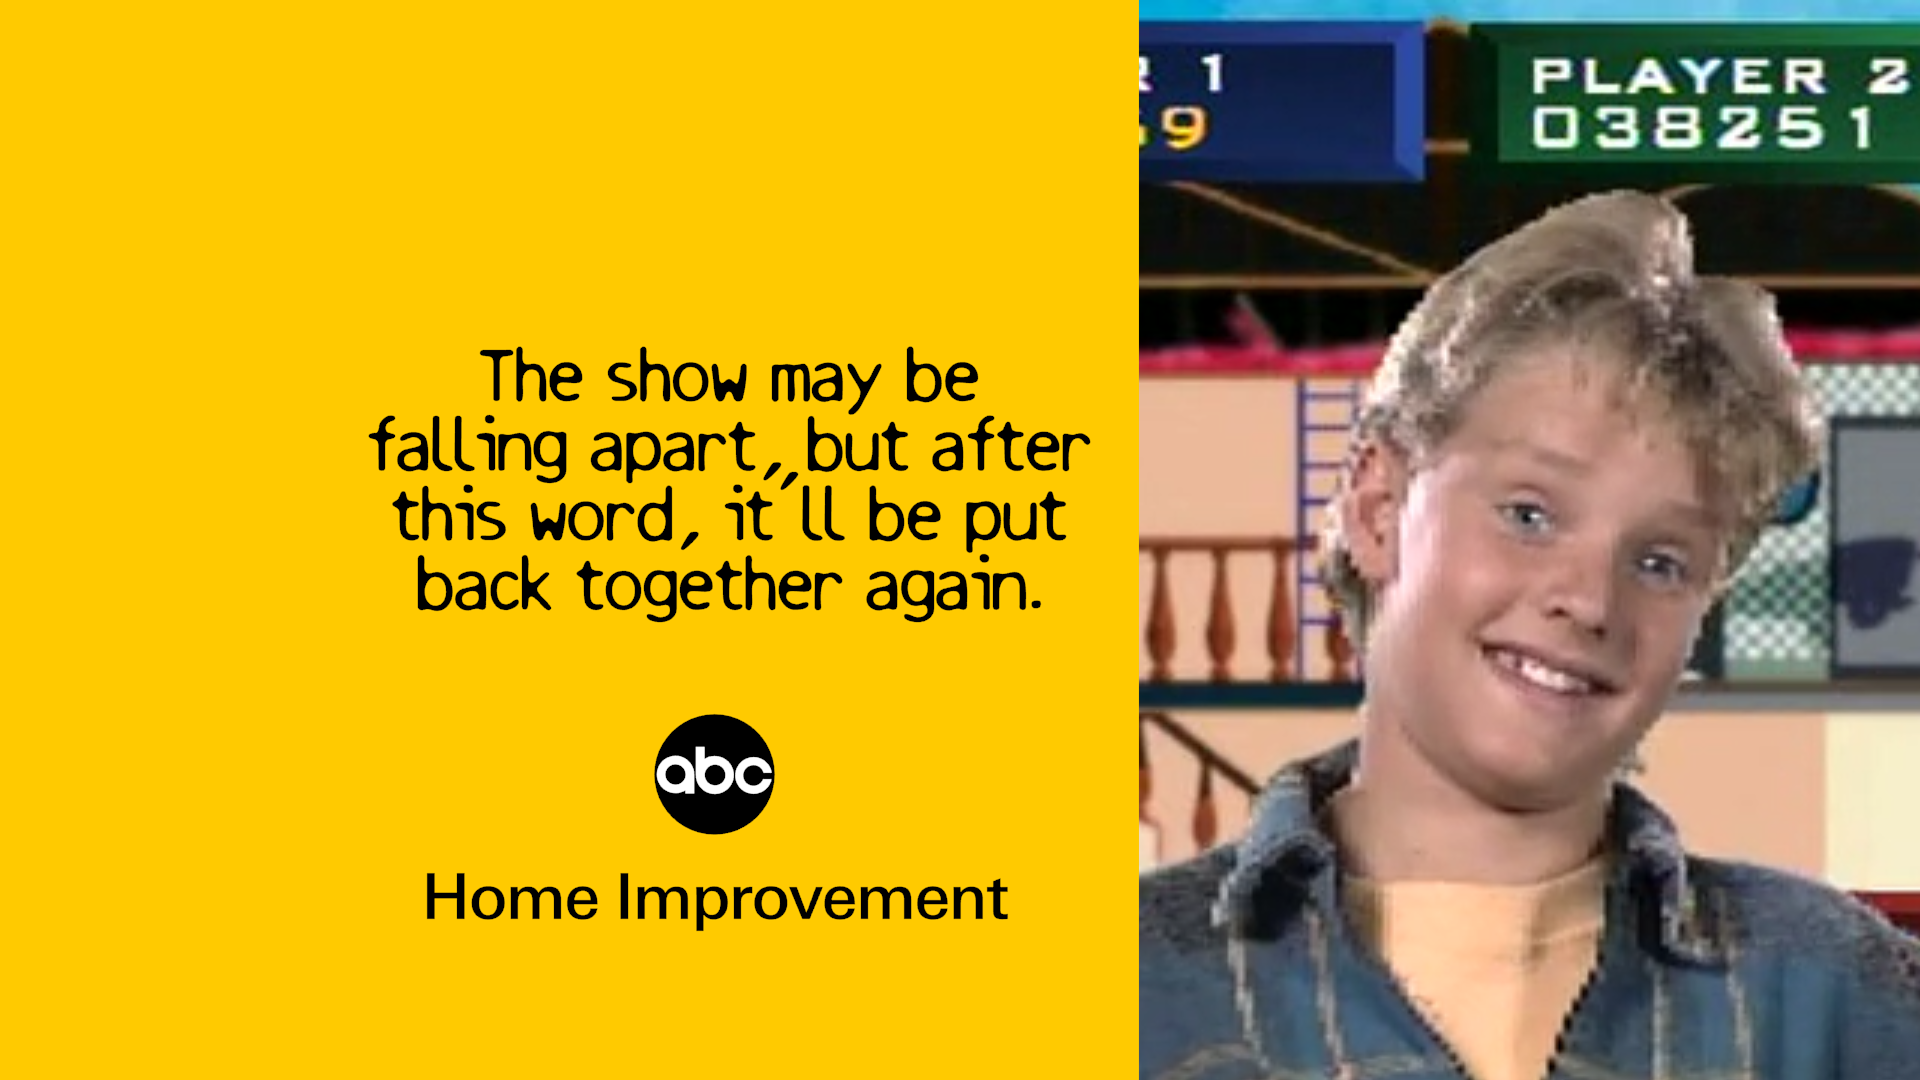 Abc Home Improvement Bumper 2 Fanmade By Lukesamsthesecond On Deviantart